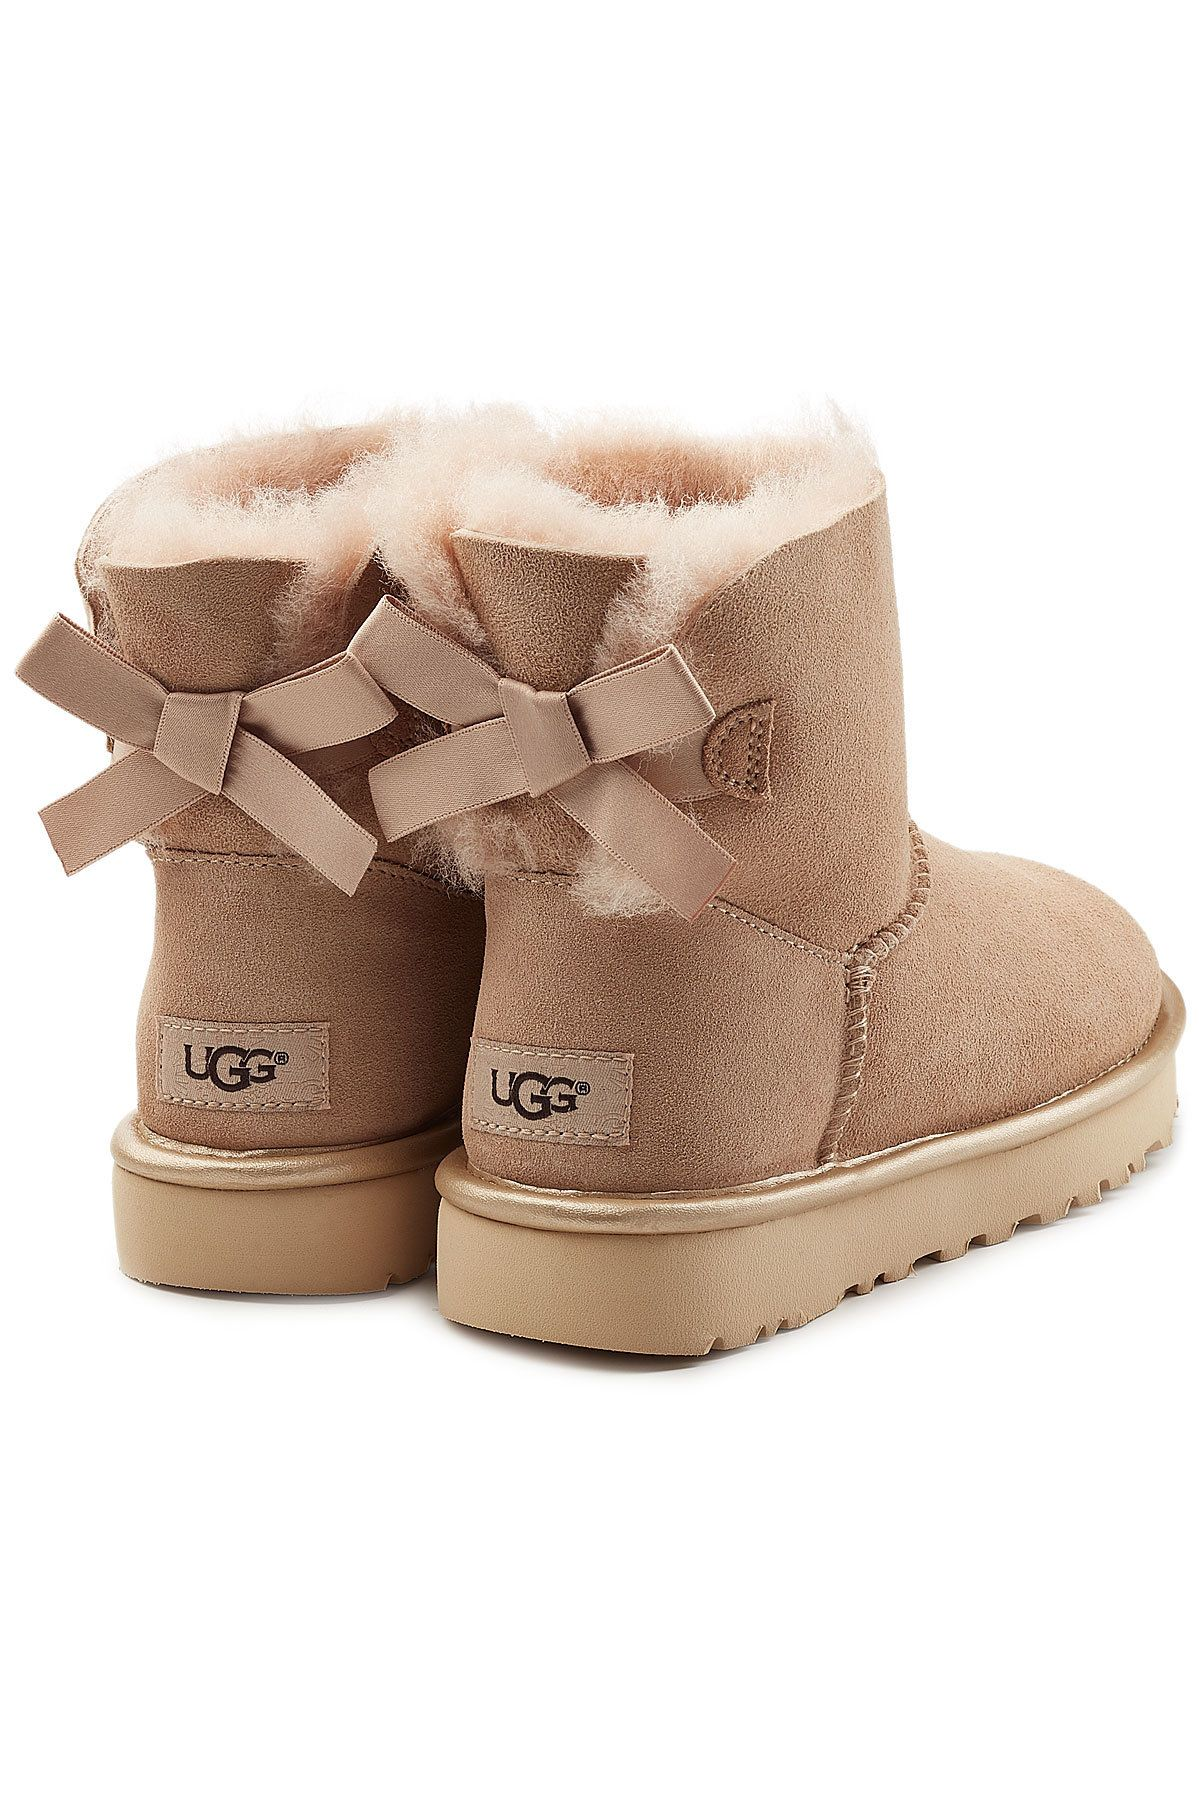 d5b2489d8f66c UGG Mini Bailey Bow Suede Boots